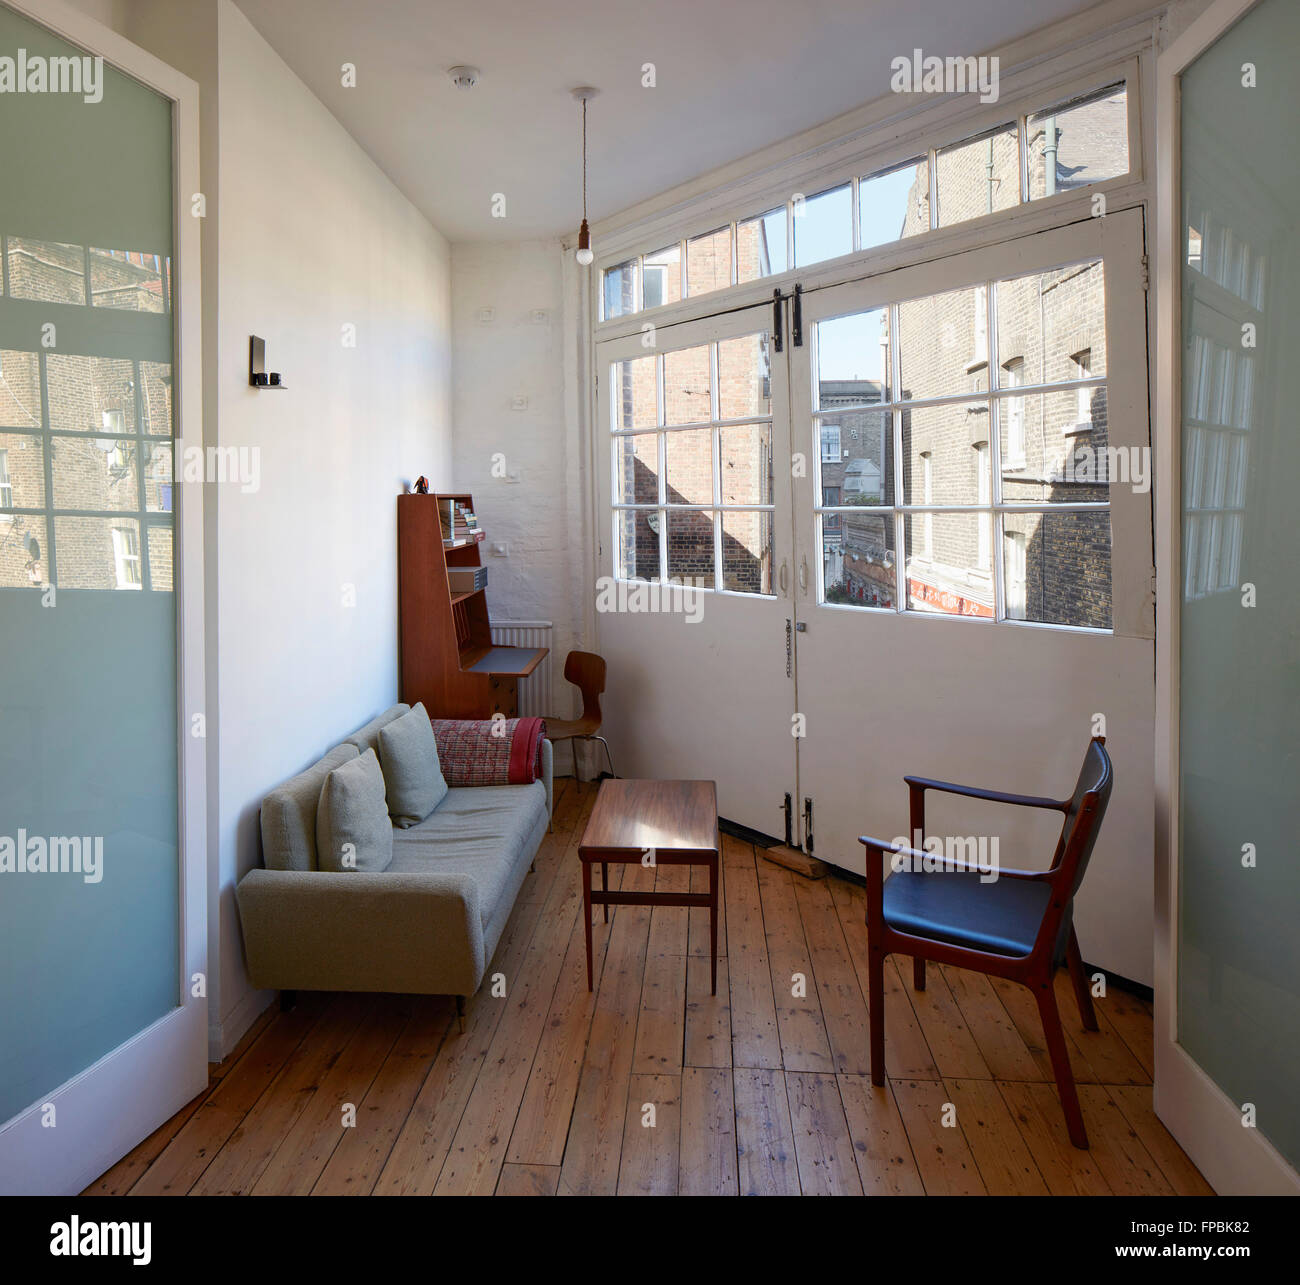 Break out area in former hoist space. DSDHA architectural office, London, United Kingdom. Architect: DSDHA, 2015. - Stock Image